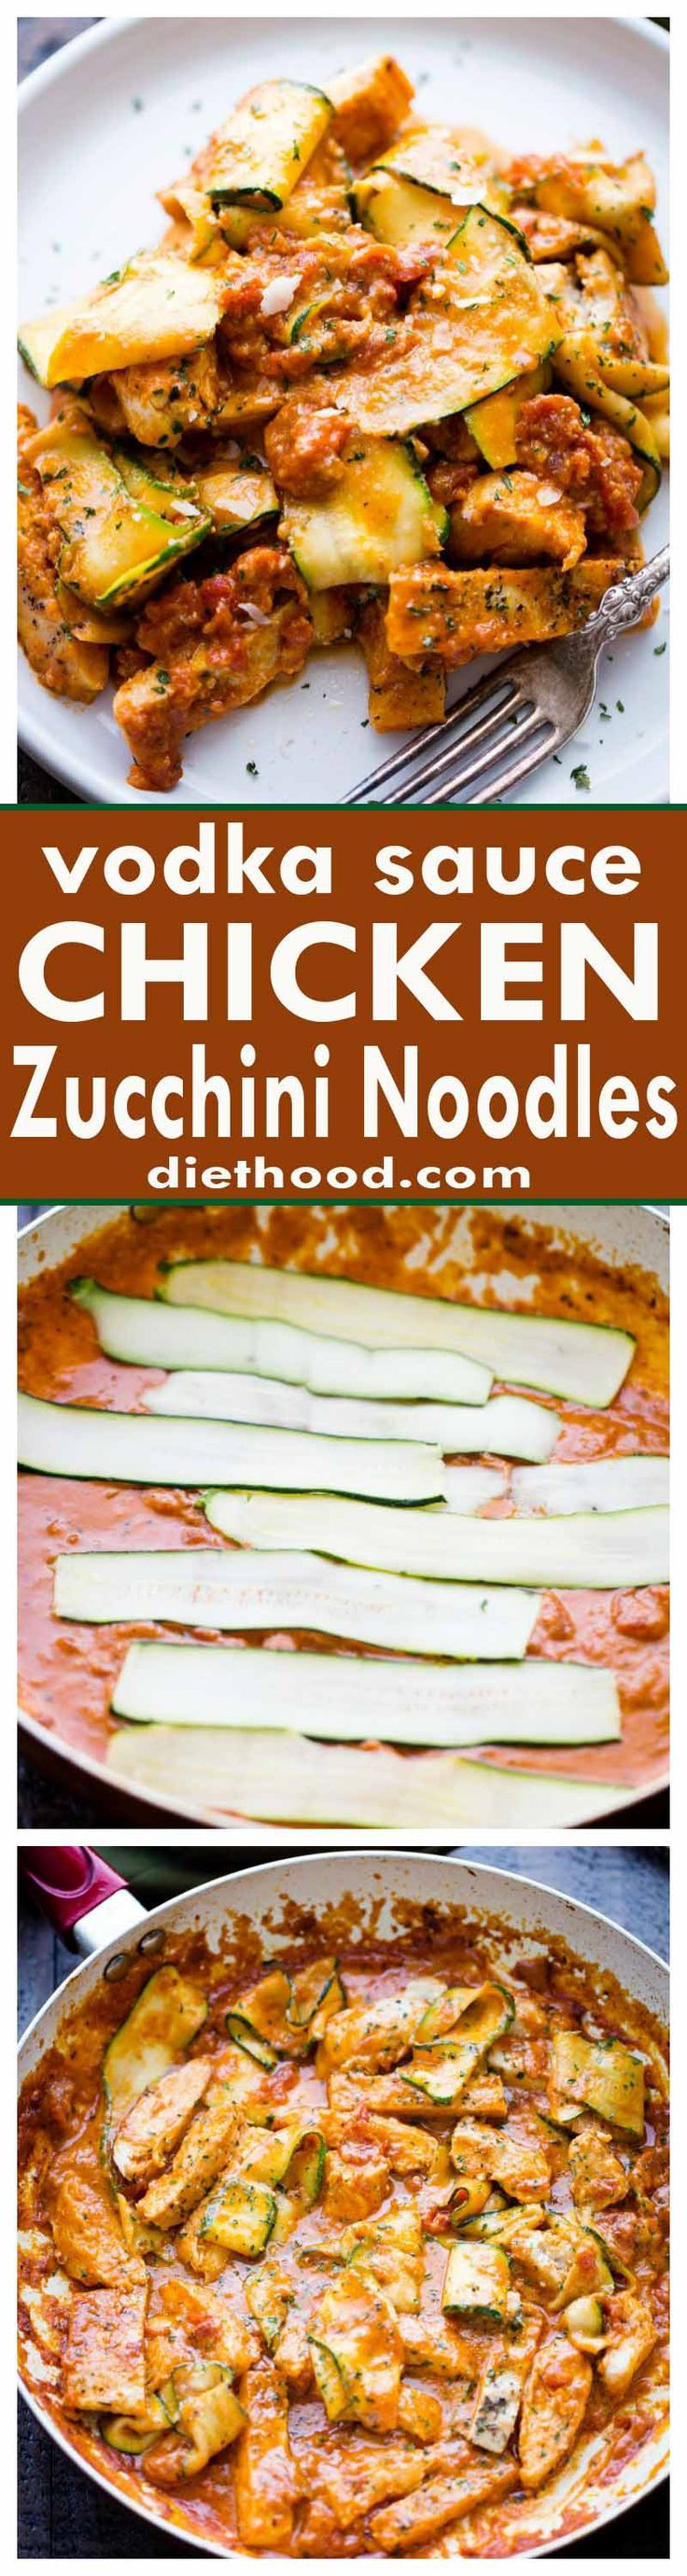 Vodka Sauce Chicken Zucchini Noodles - Easy, quick, but SO delicious Zucchini Noodles and Chicken tossed with homemade Vodka Sauce.